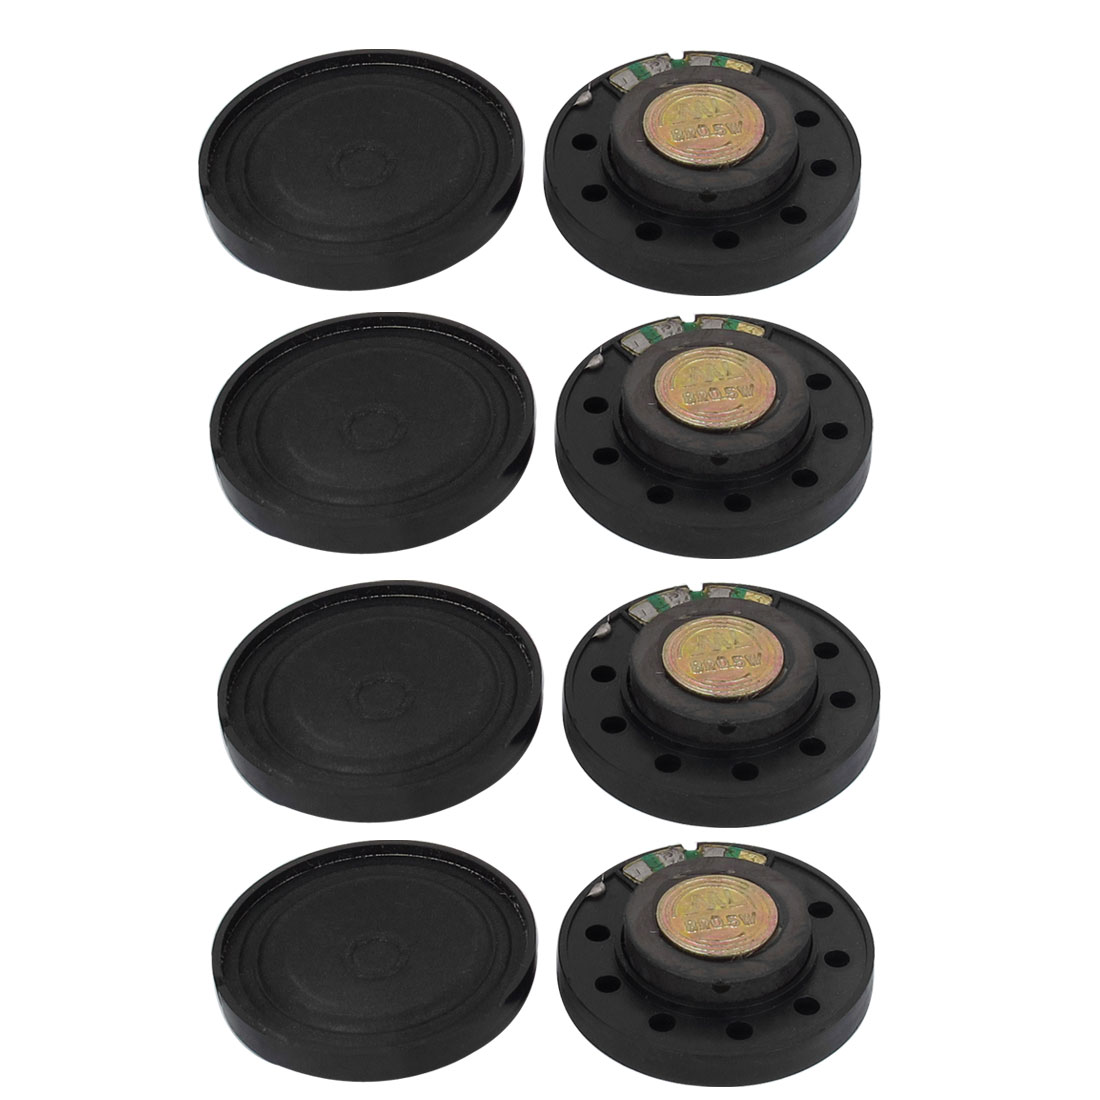 8 Pcs 0.5W 8 Ohm 36mm Dia Internal Magnet Speaker Amplifier Black